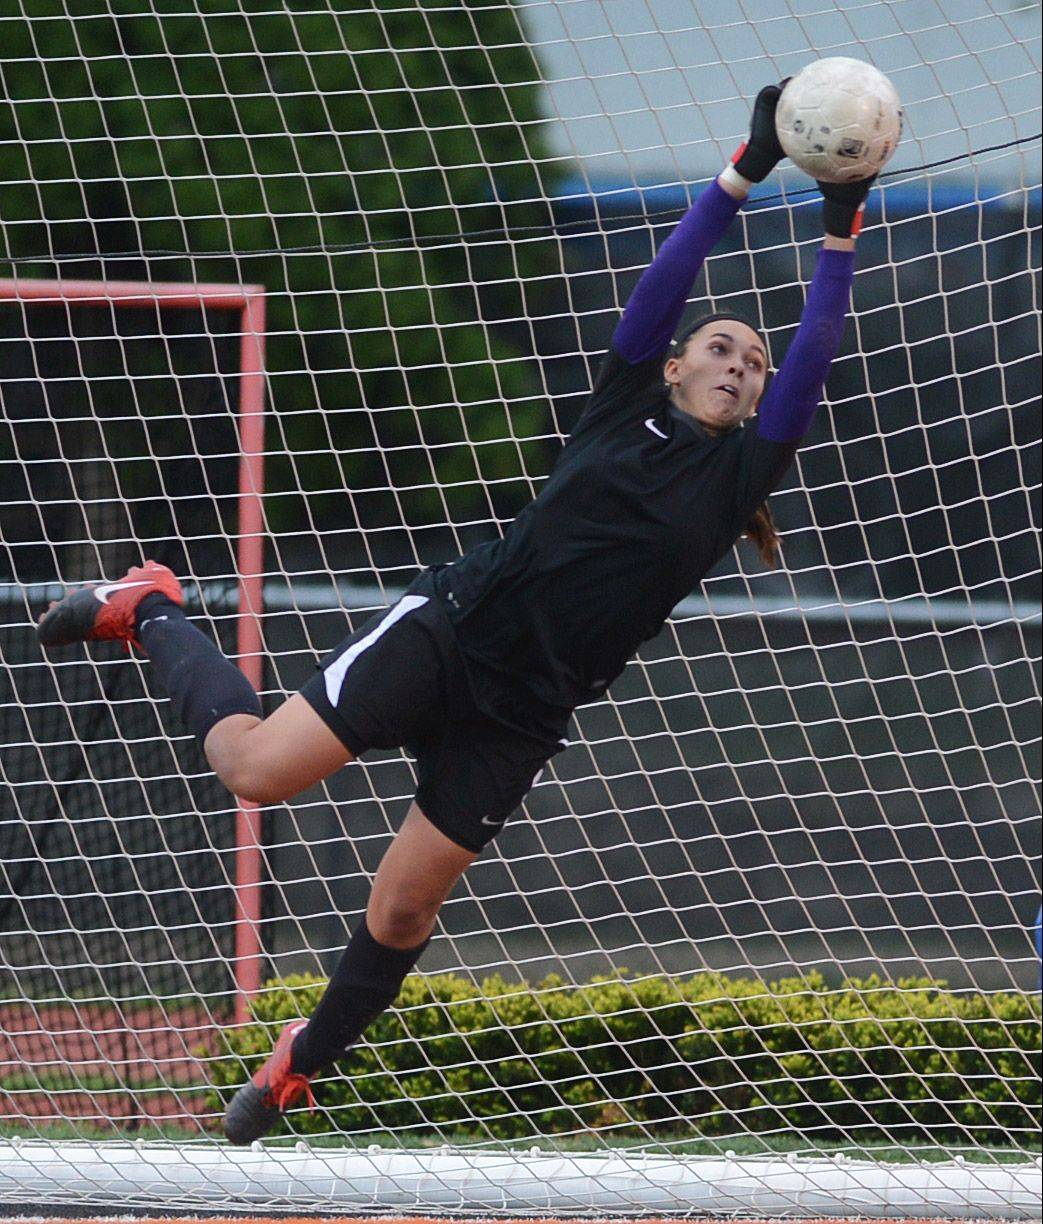 Mundelein goalkeeper Brooke Dennis makes a leaping save against Buffalo Grove during Friday's Class 3A girls soccer regional final at Libertyville.